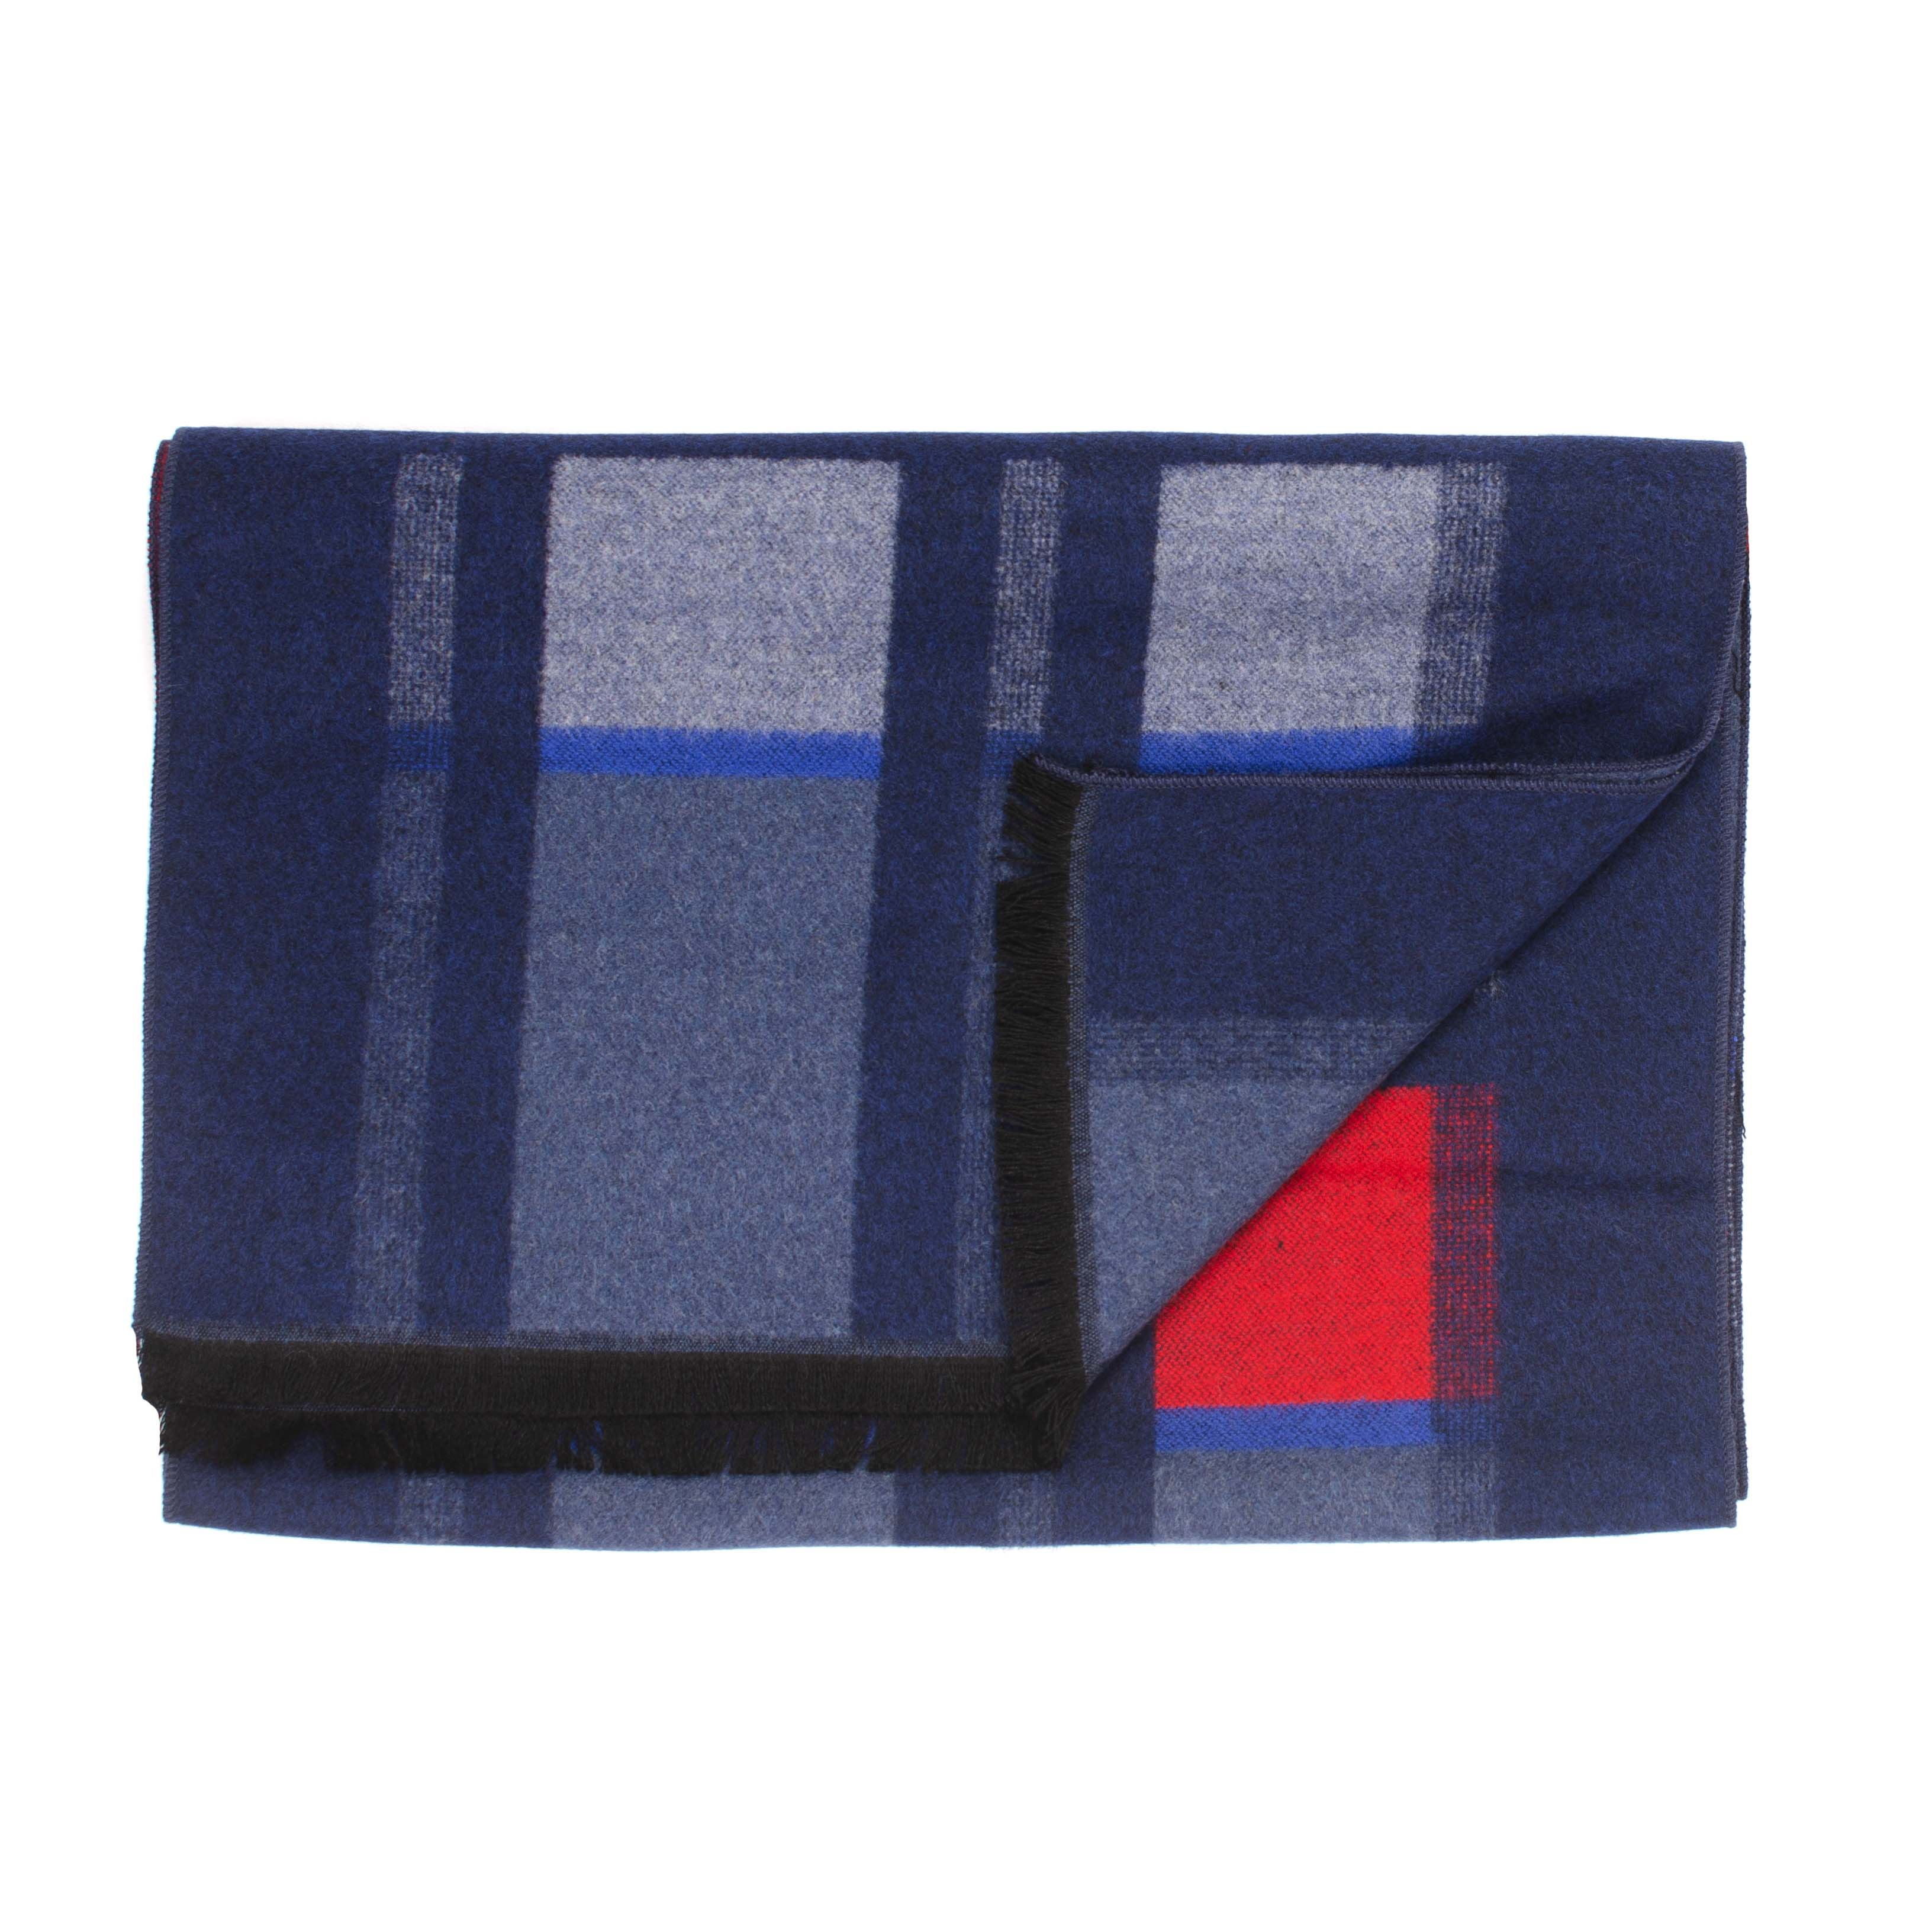 Jayan | Scarf checked in red